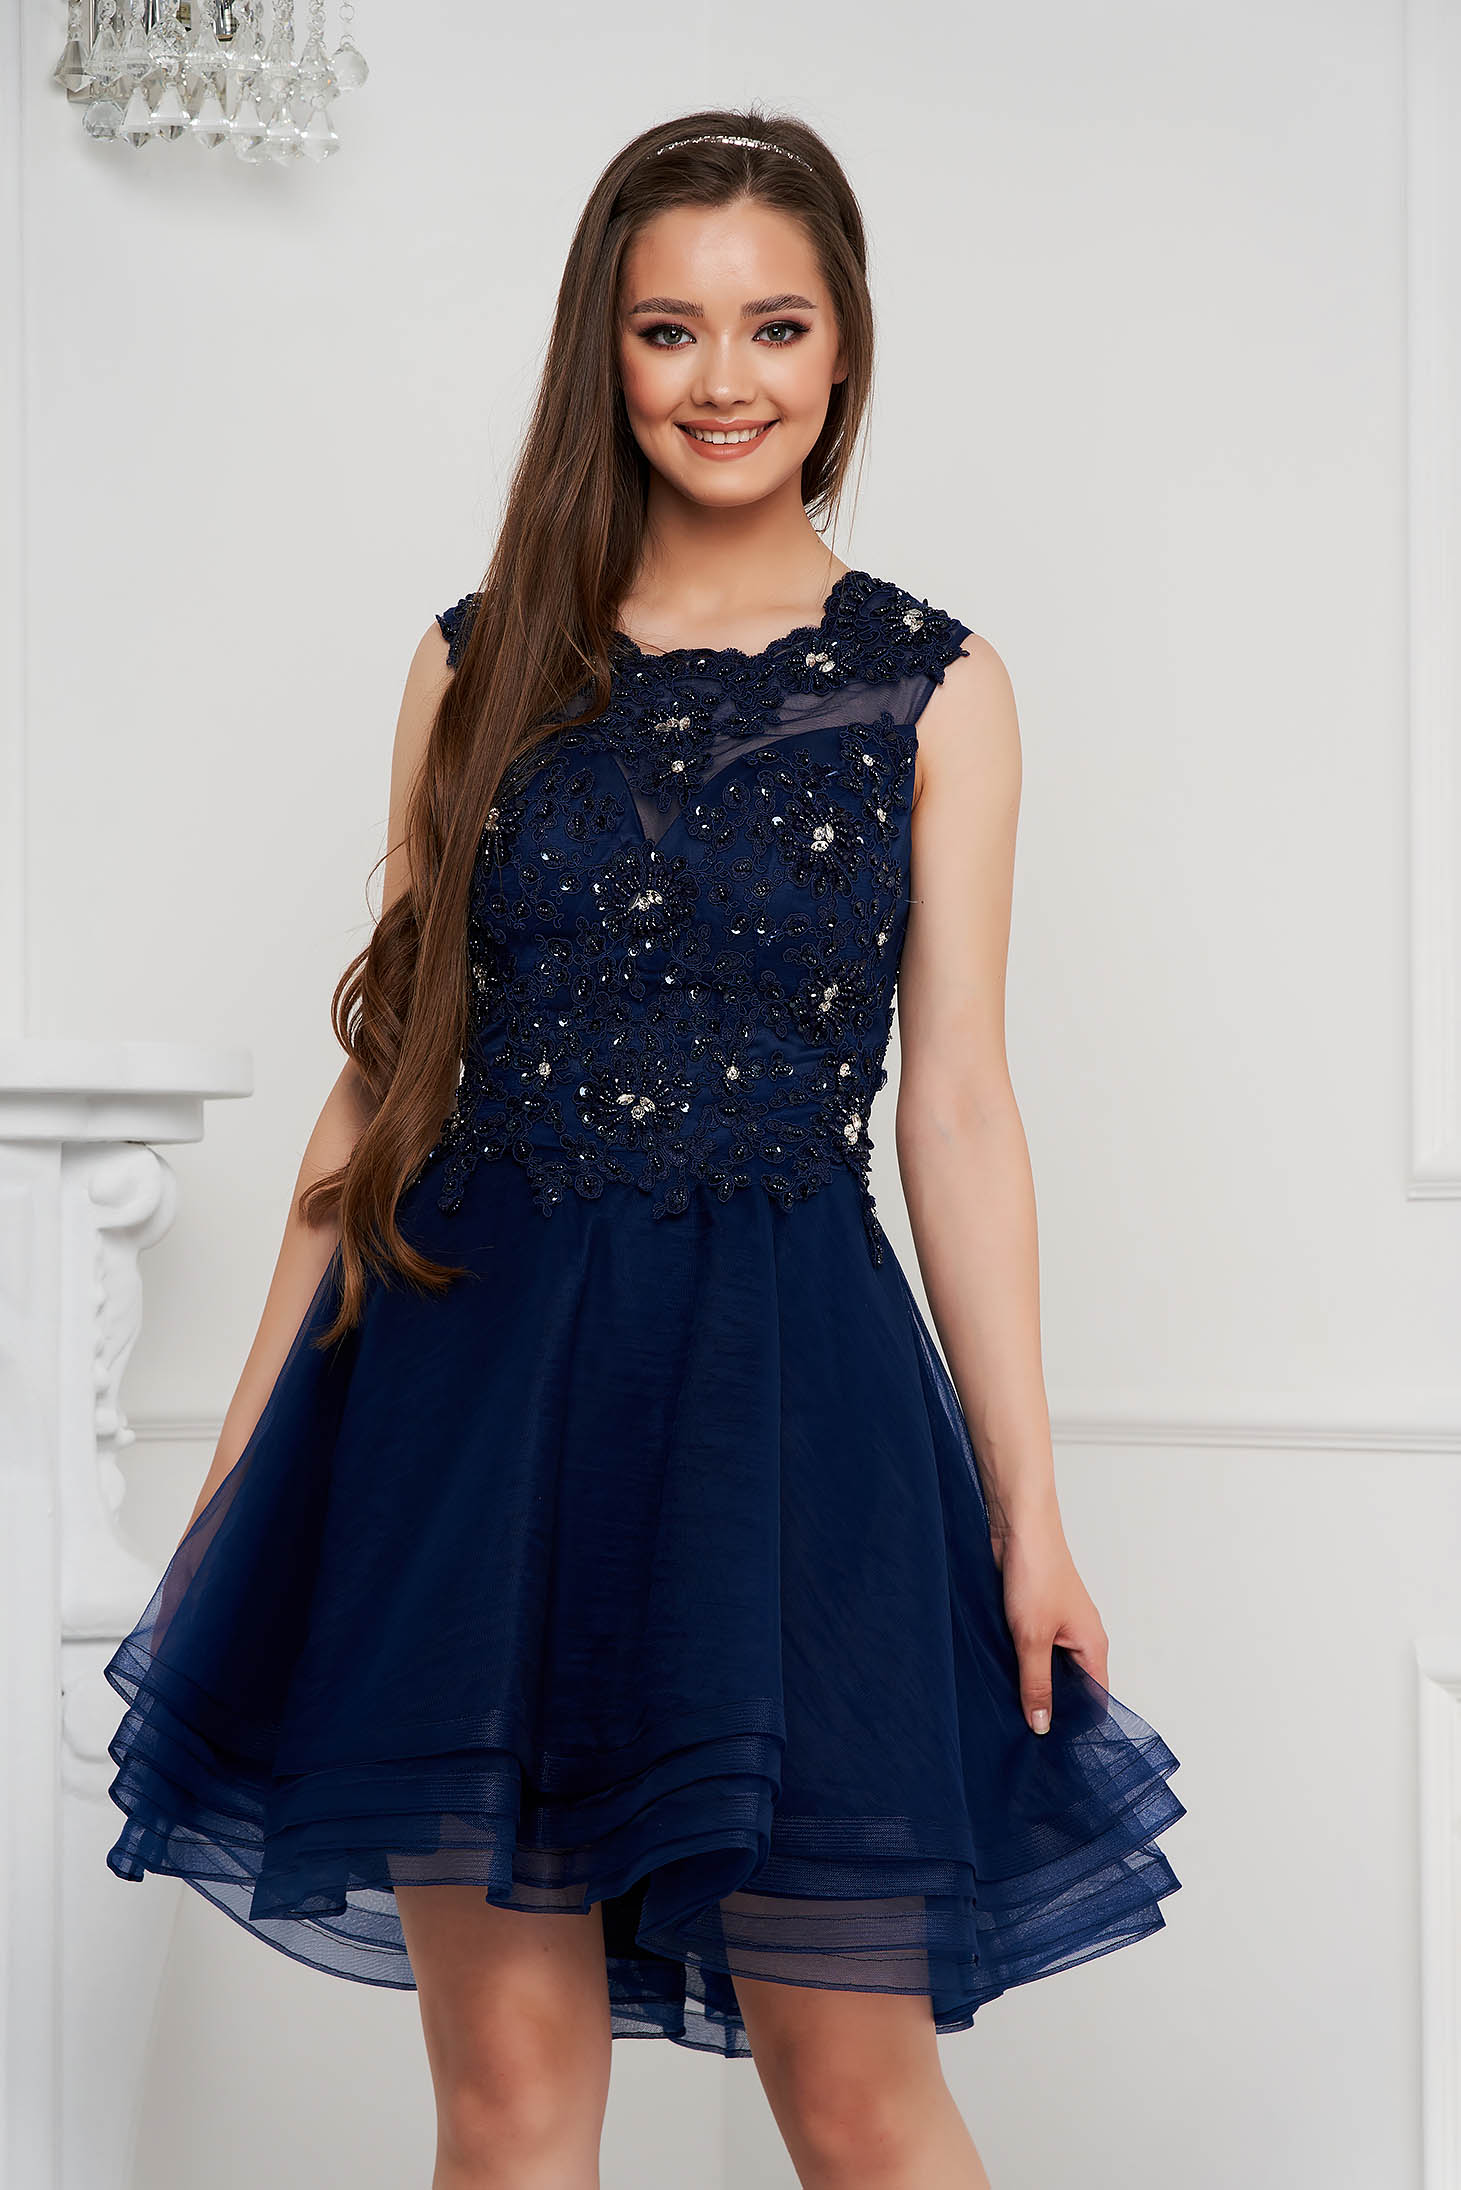 Darkblue dress short cut cloche from tulle with sequin embellished details